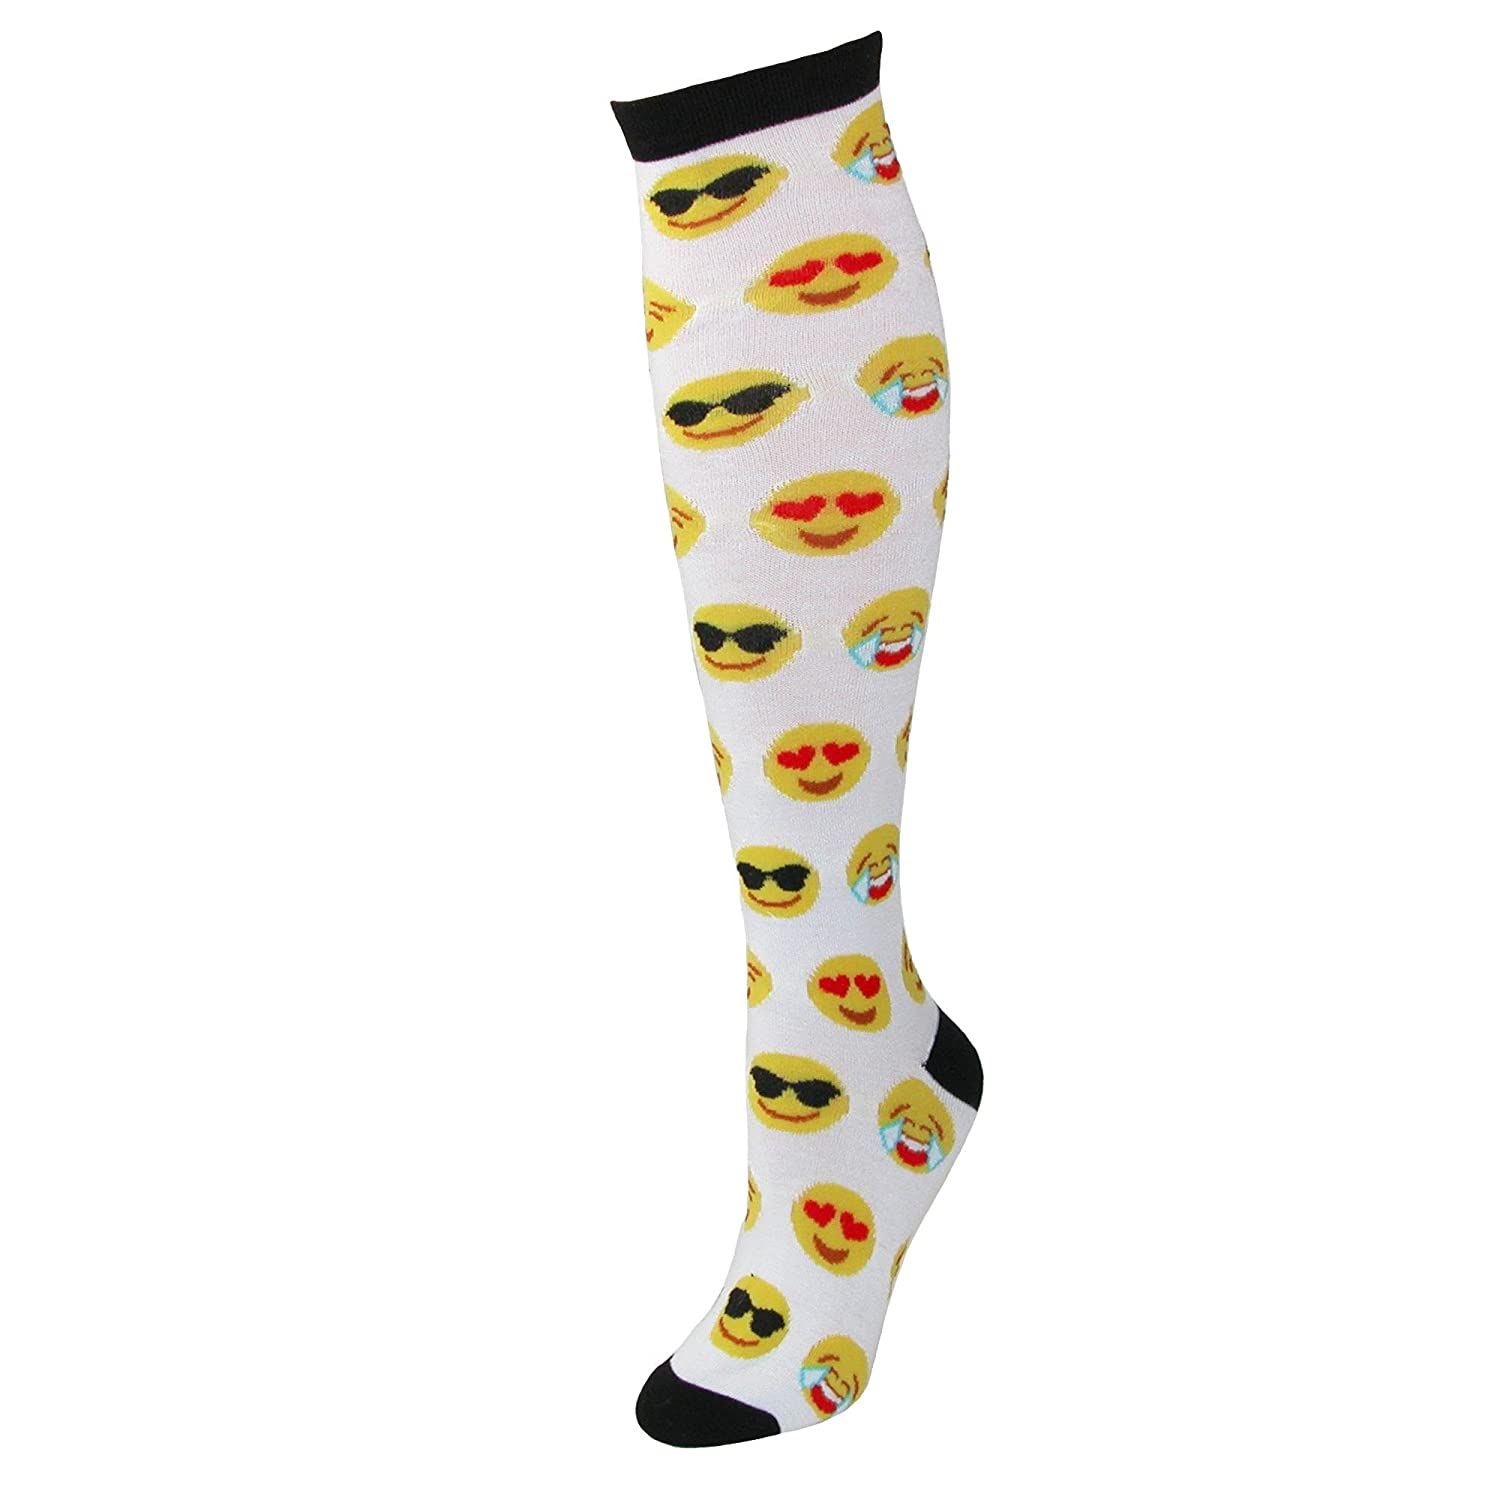 CTM® Women's Emoji Print Novelty Knee High Socks Black US-SR448-BLK